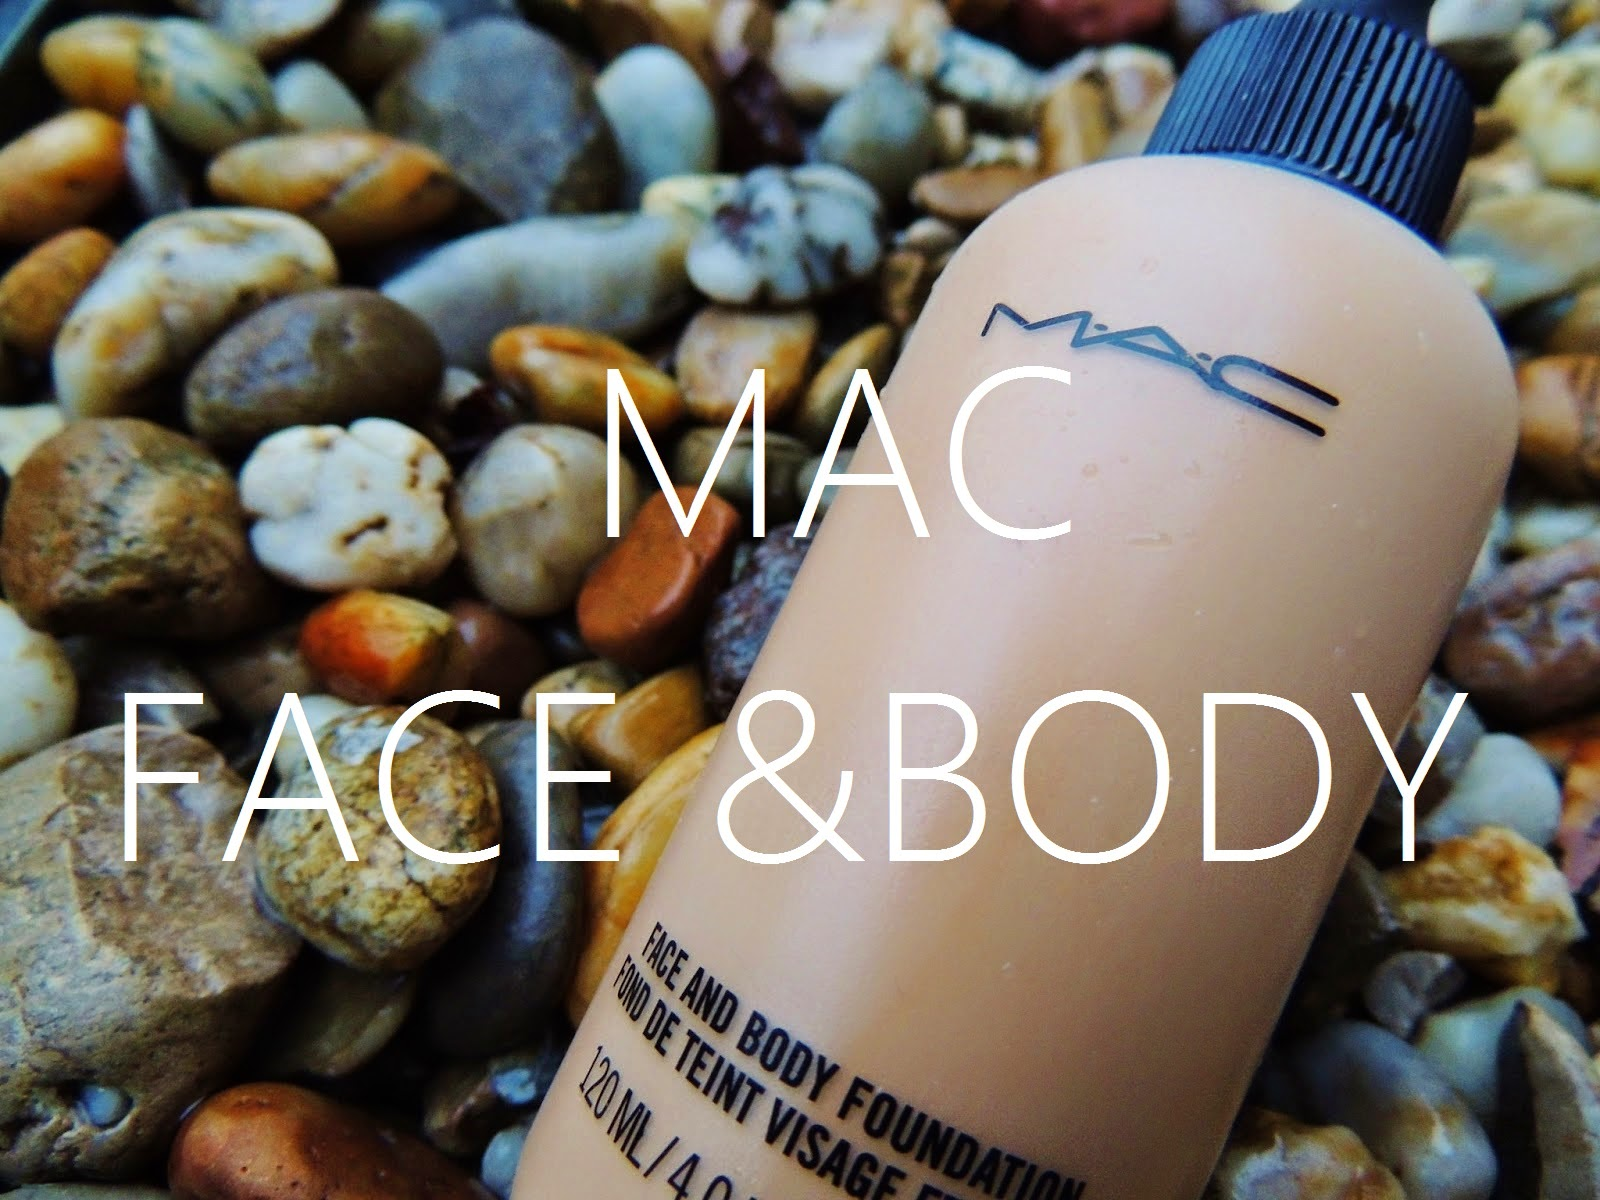 MAC - Face&Body Foundation - Review